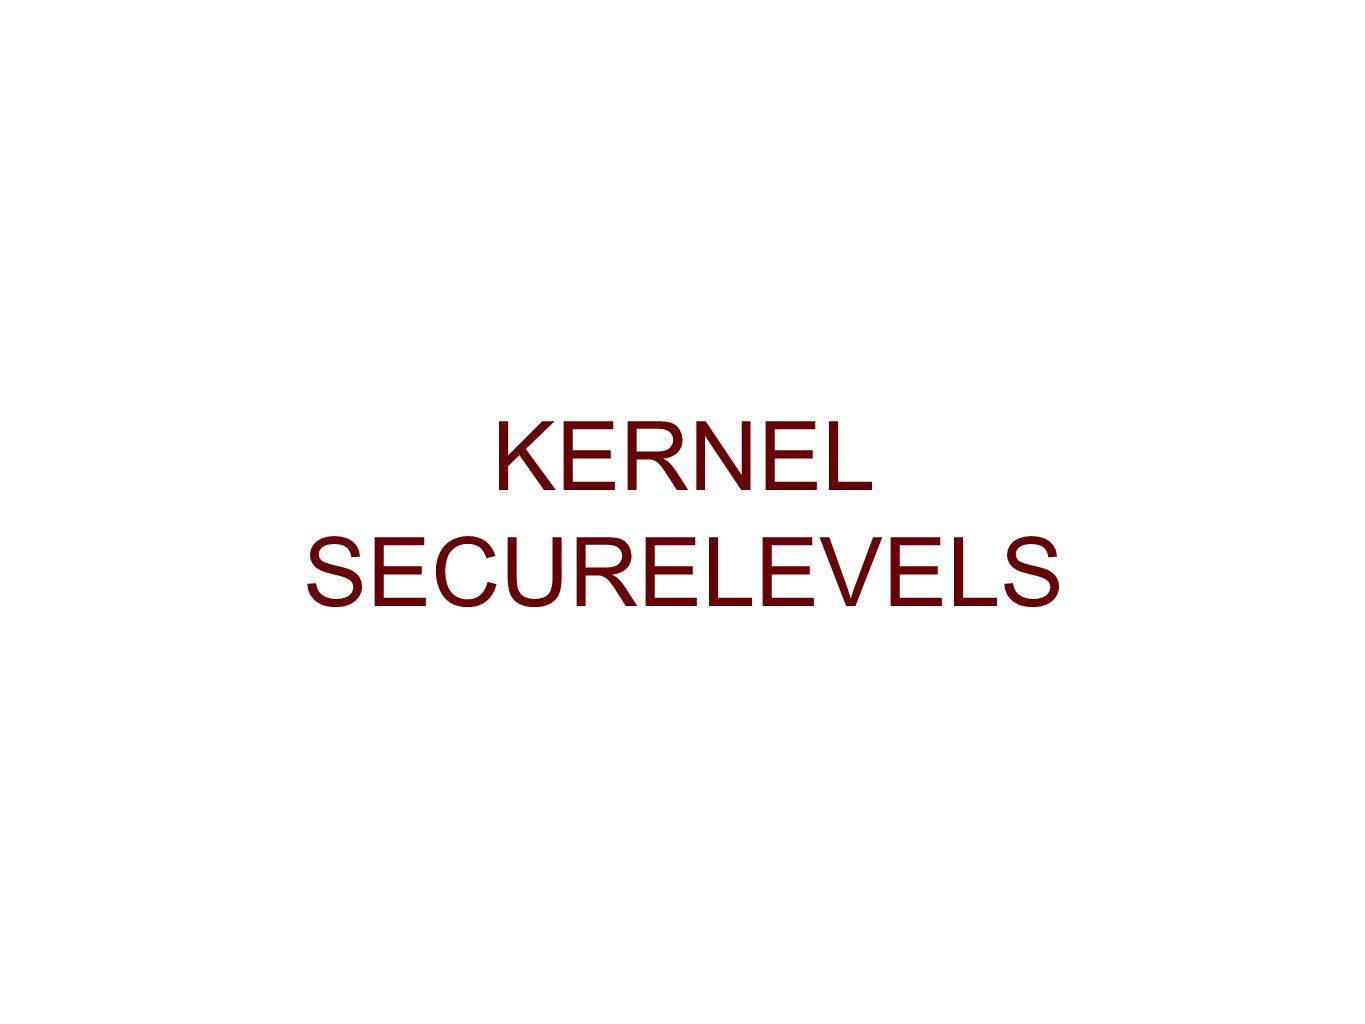 KERNEL SECURELEVELS